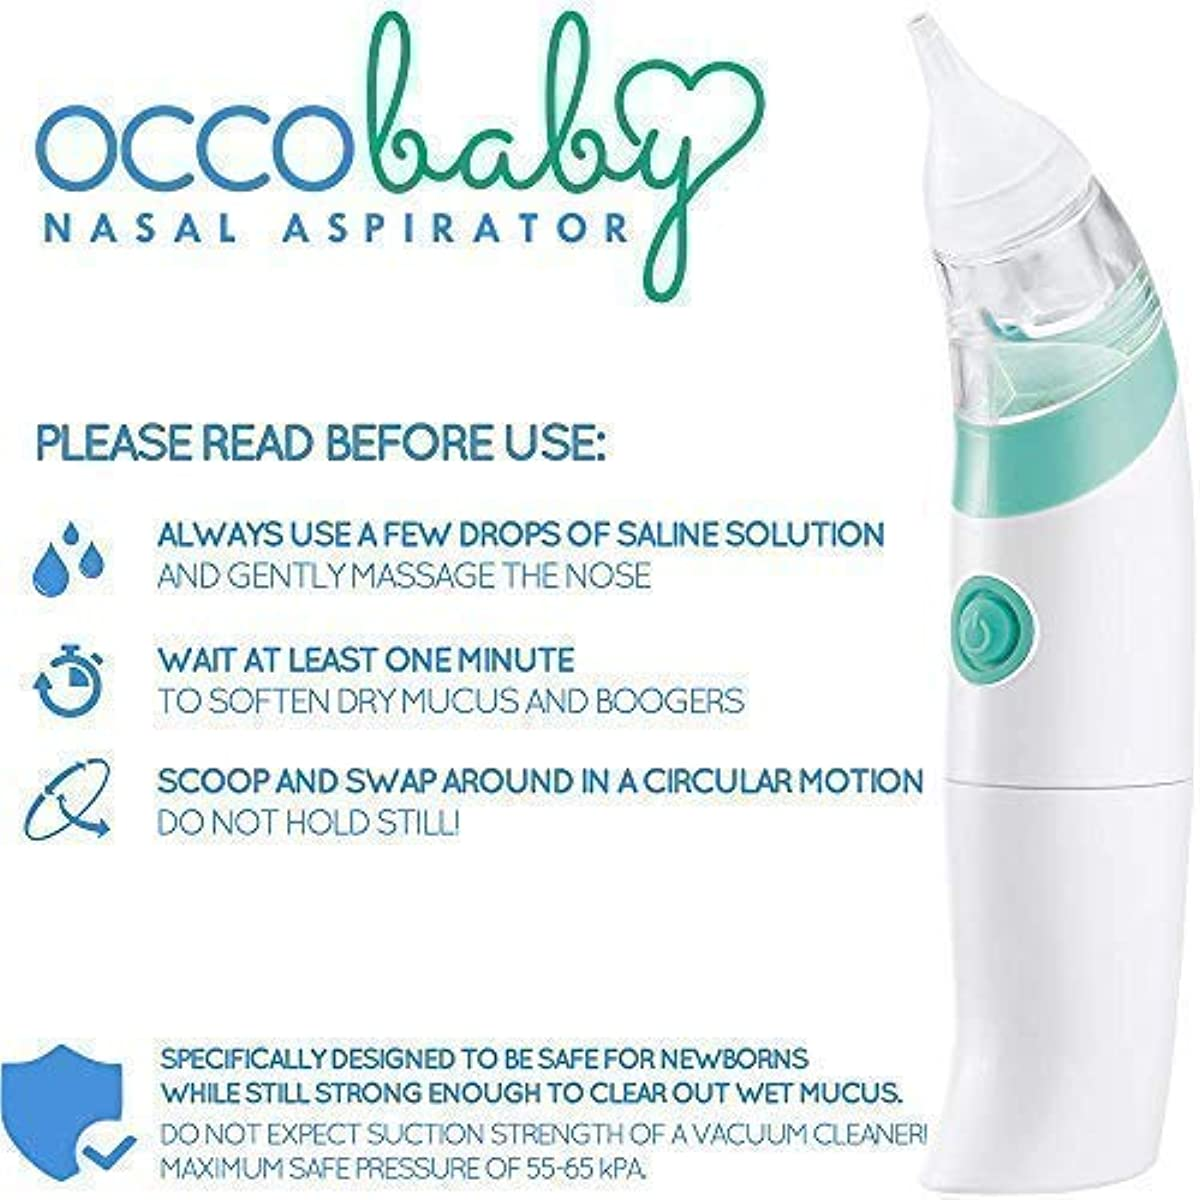 Safe Hygienic And Quick Battery Operated 100% Original Occobaby Baby Nasal Aspirator Baby